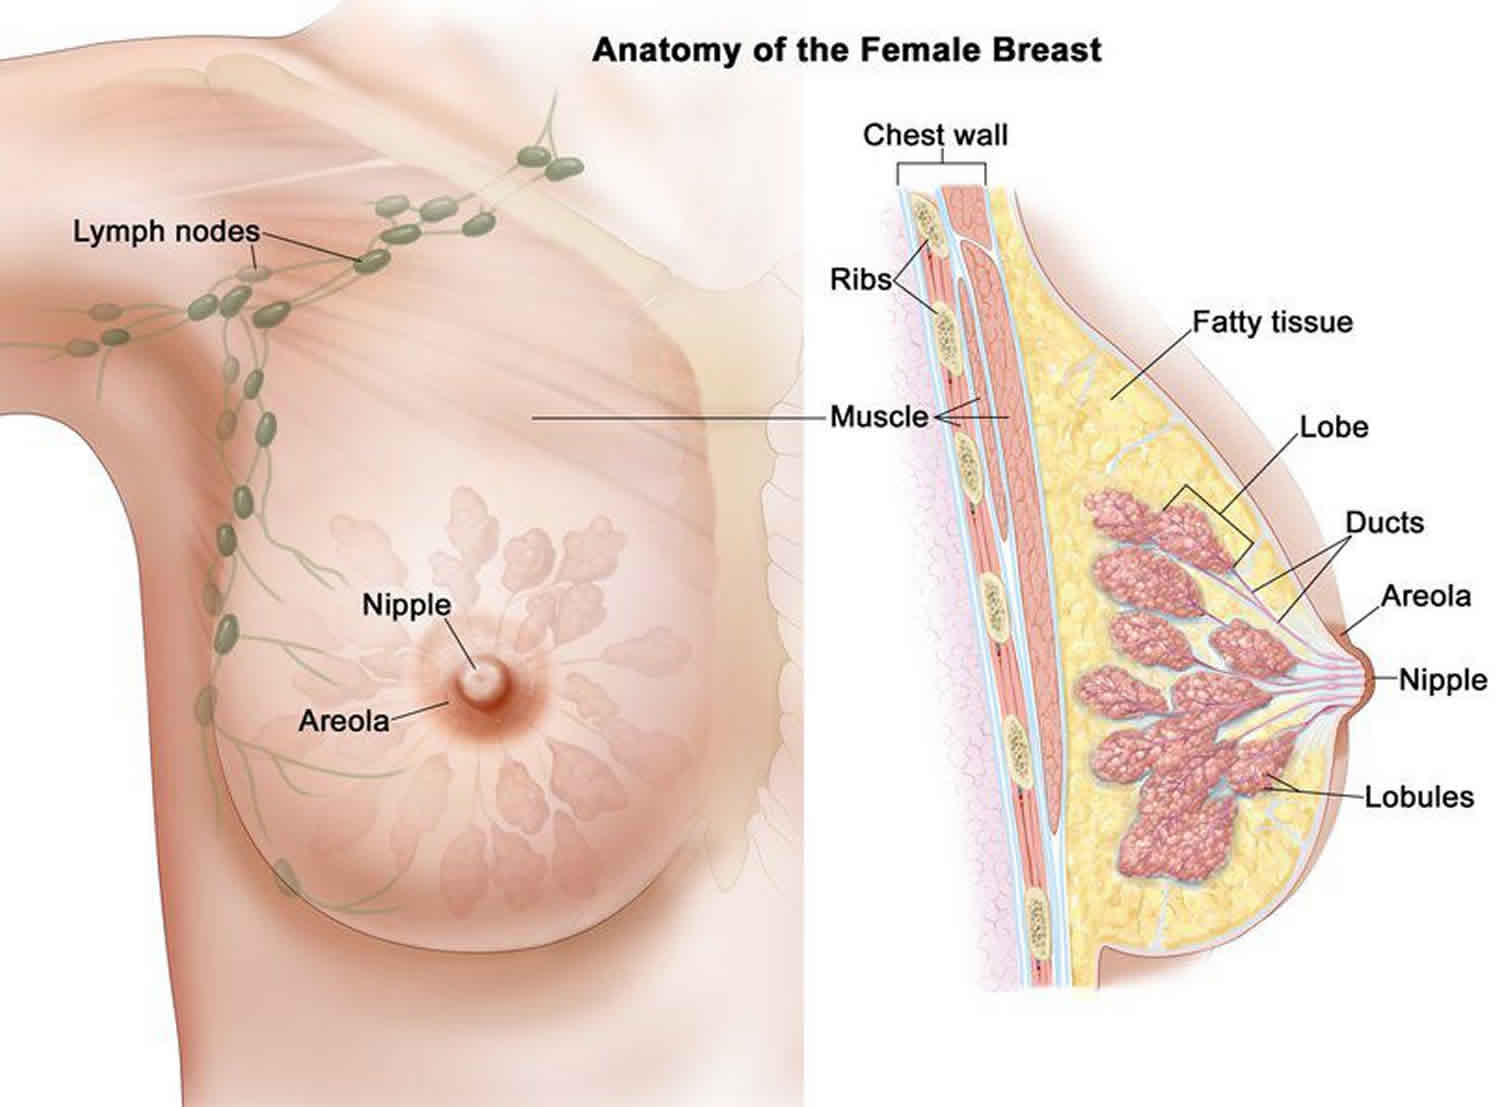 intraductal papilloma of breast symptoms)